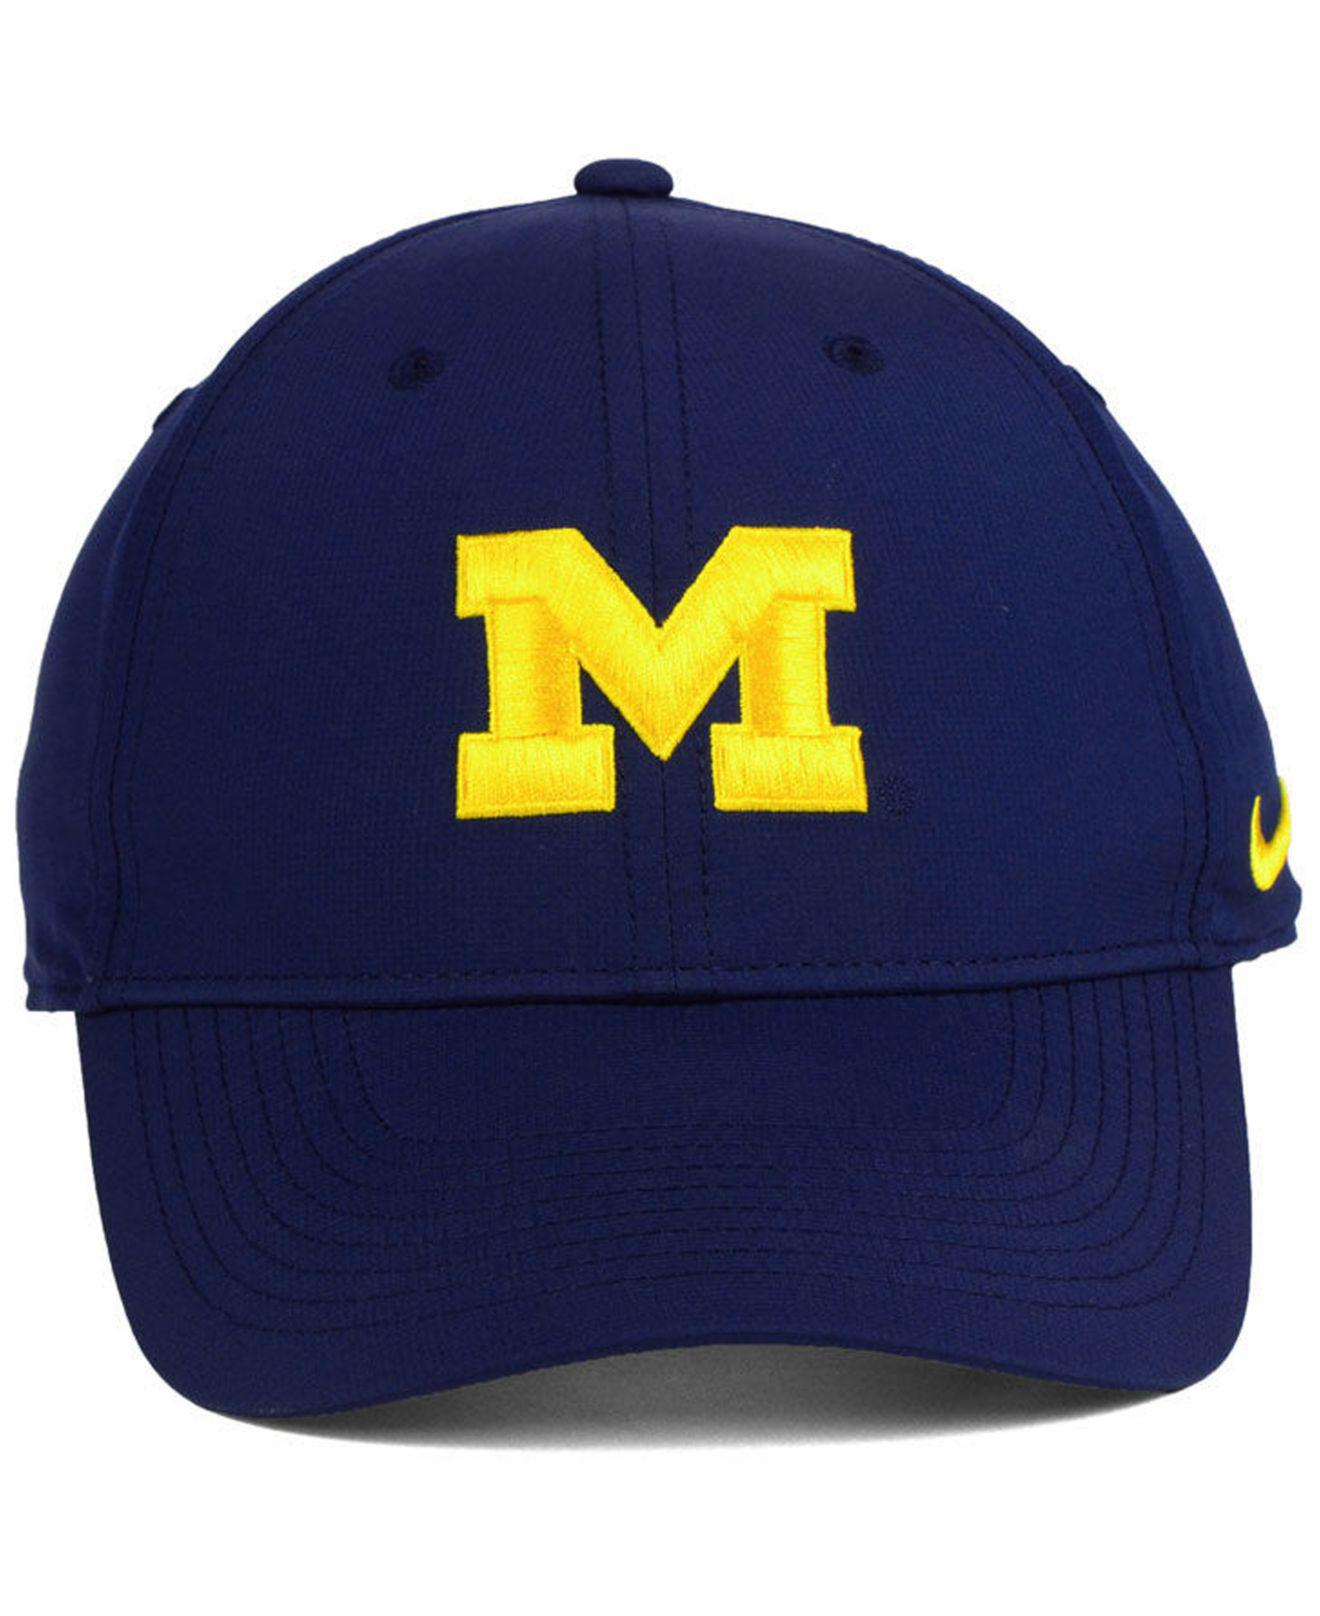 size 40 a77ce 00af9 ... cheap lyst nike michigan wolverines dri fit adjustable cap in blue for  men 6345b f4c55